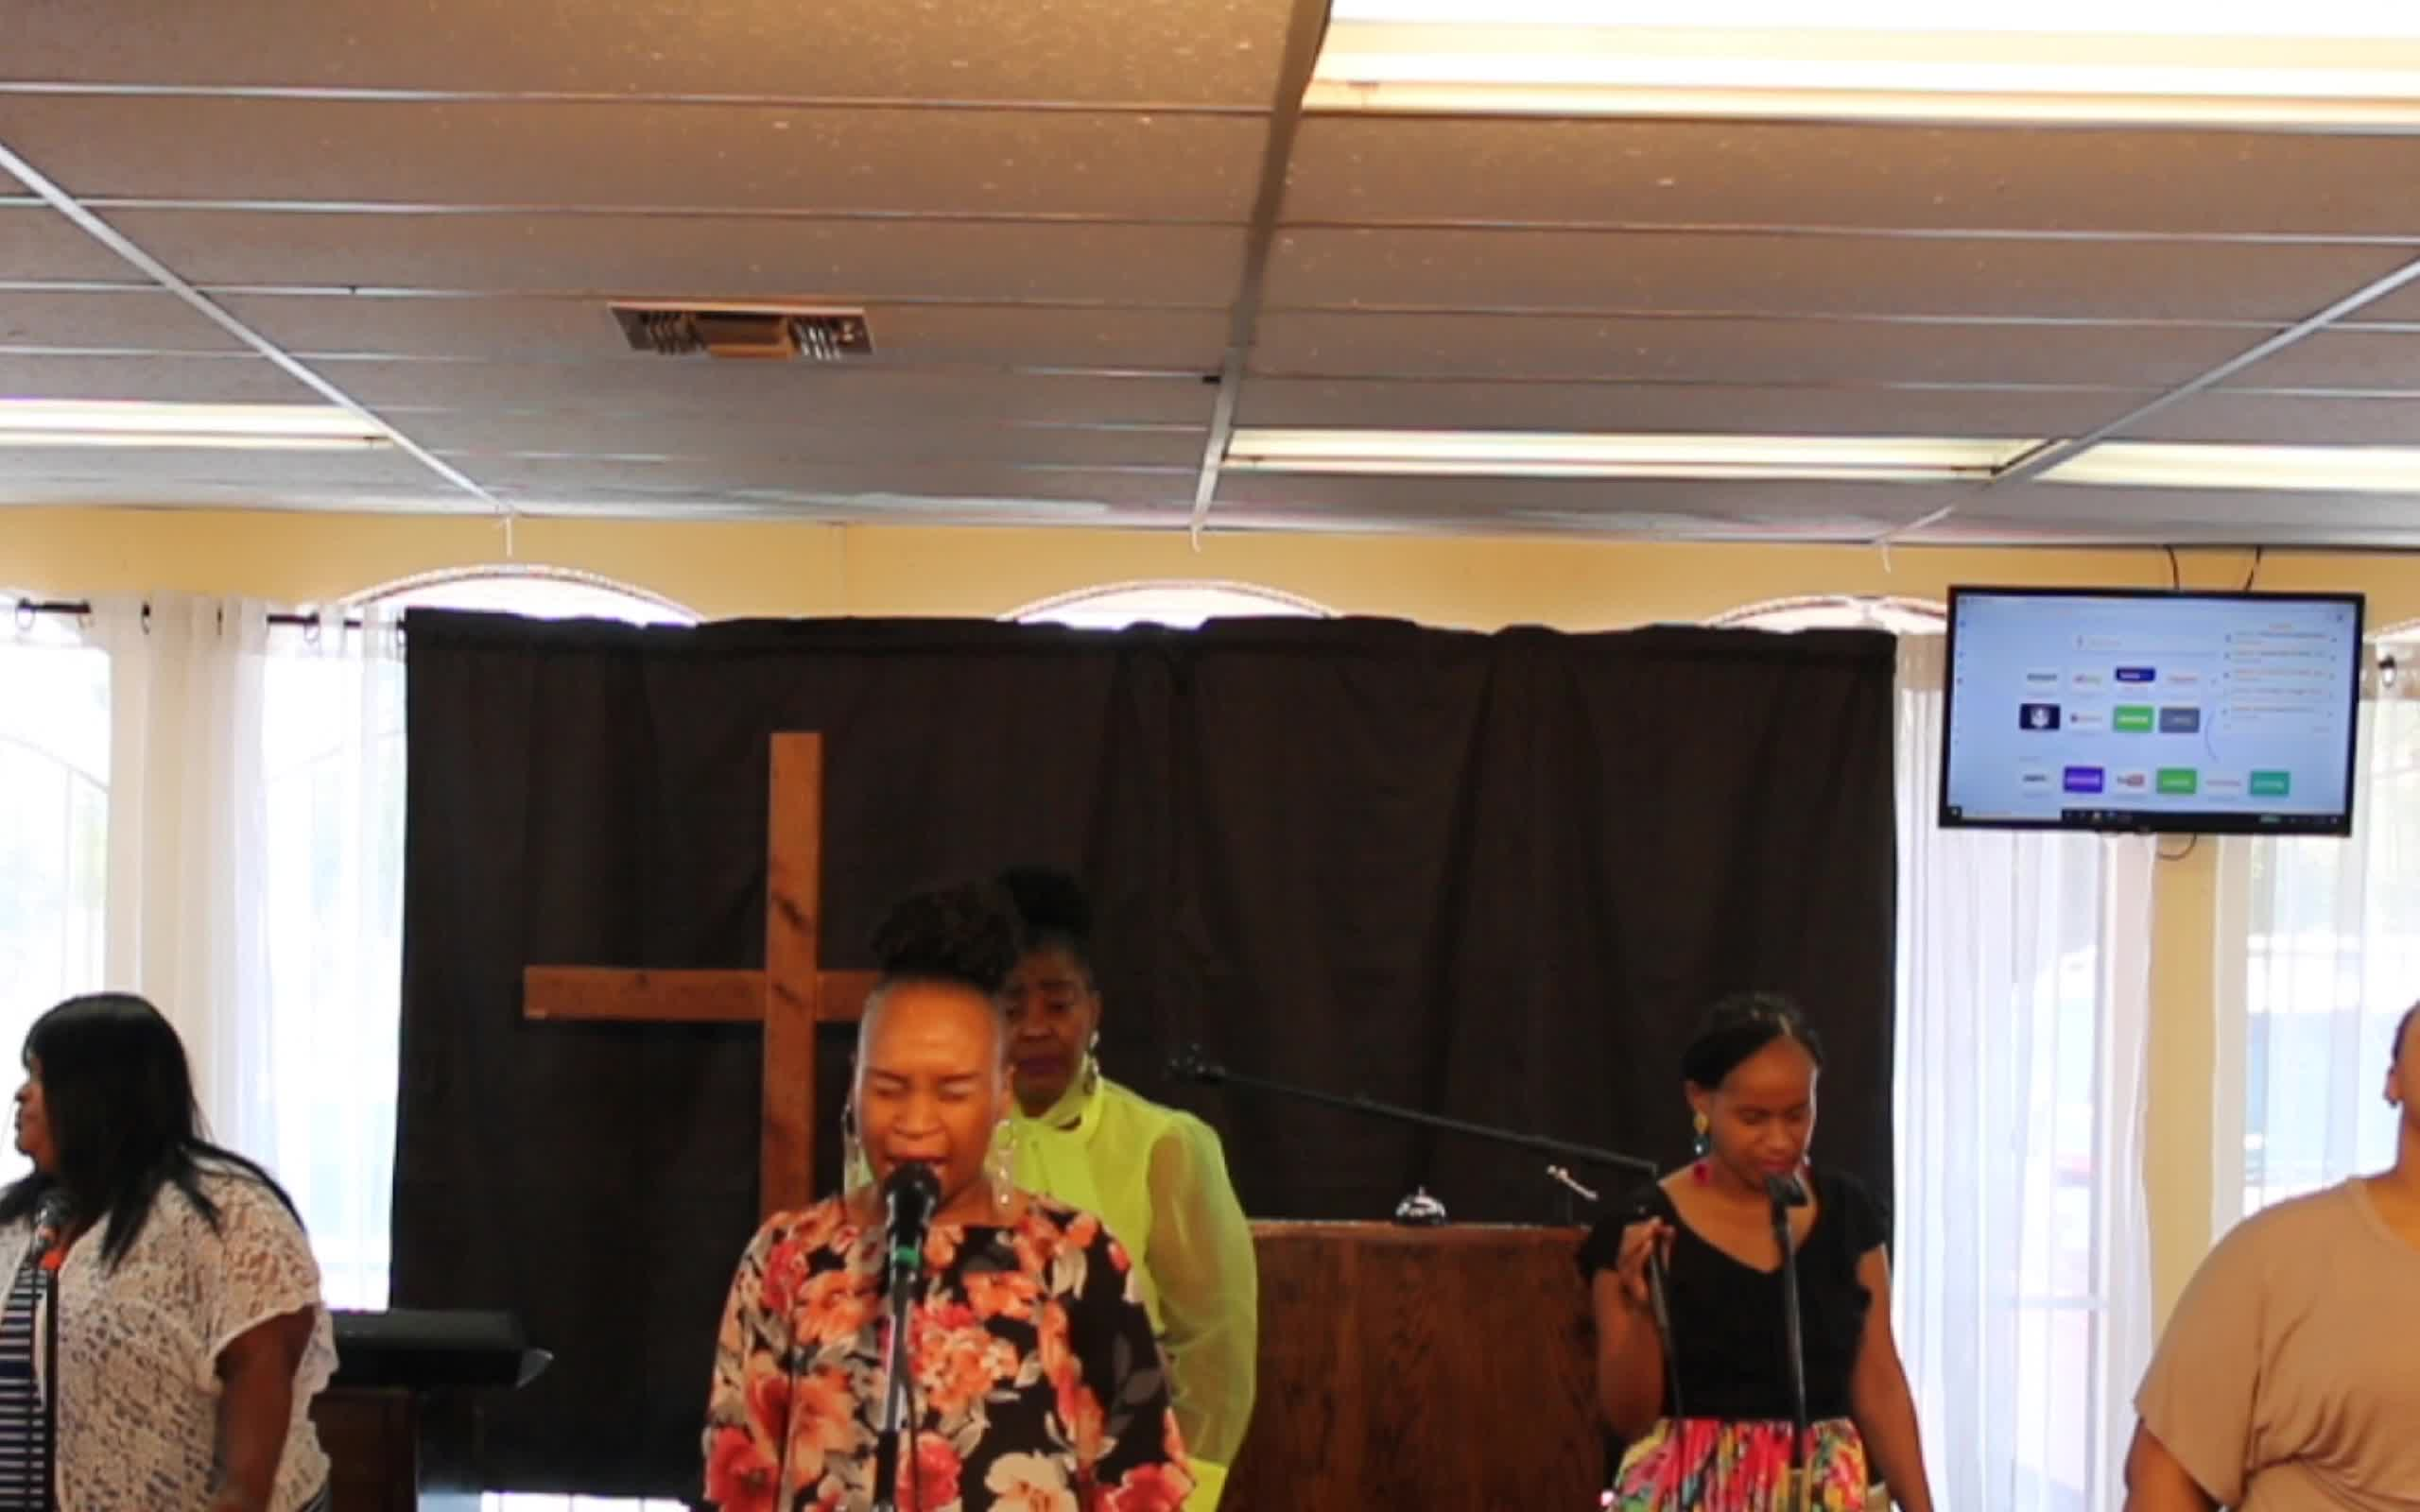 Bethels Grace Christian COGIC Livestreaming